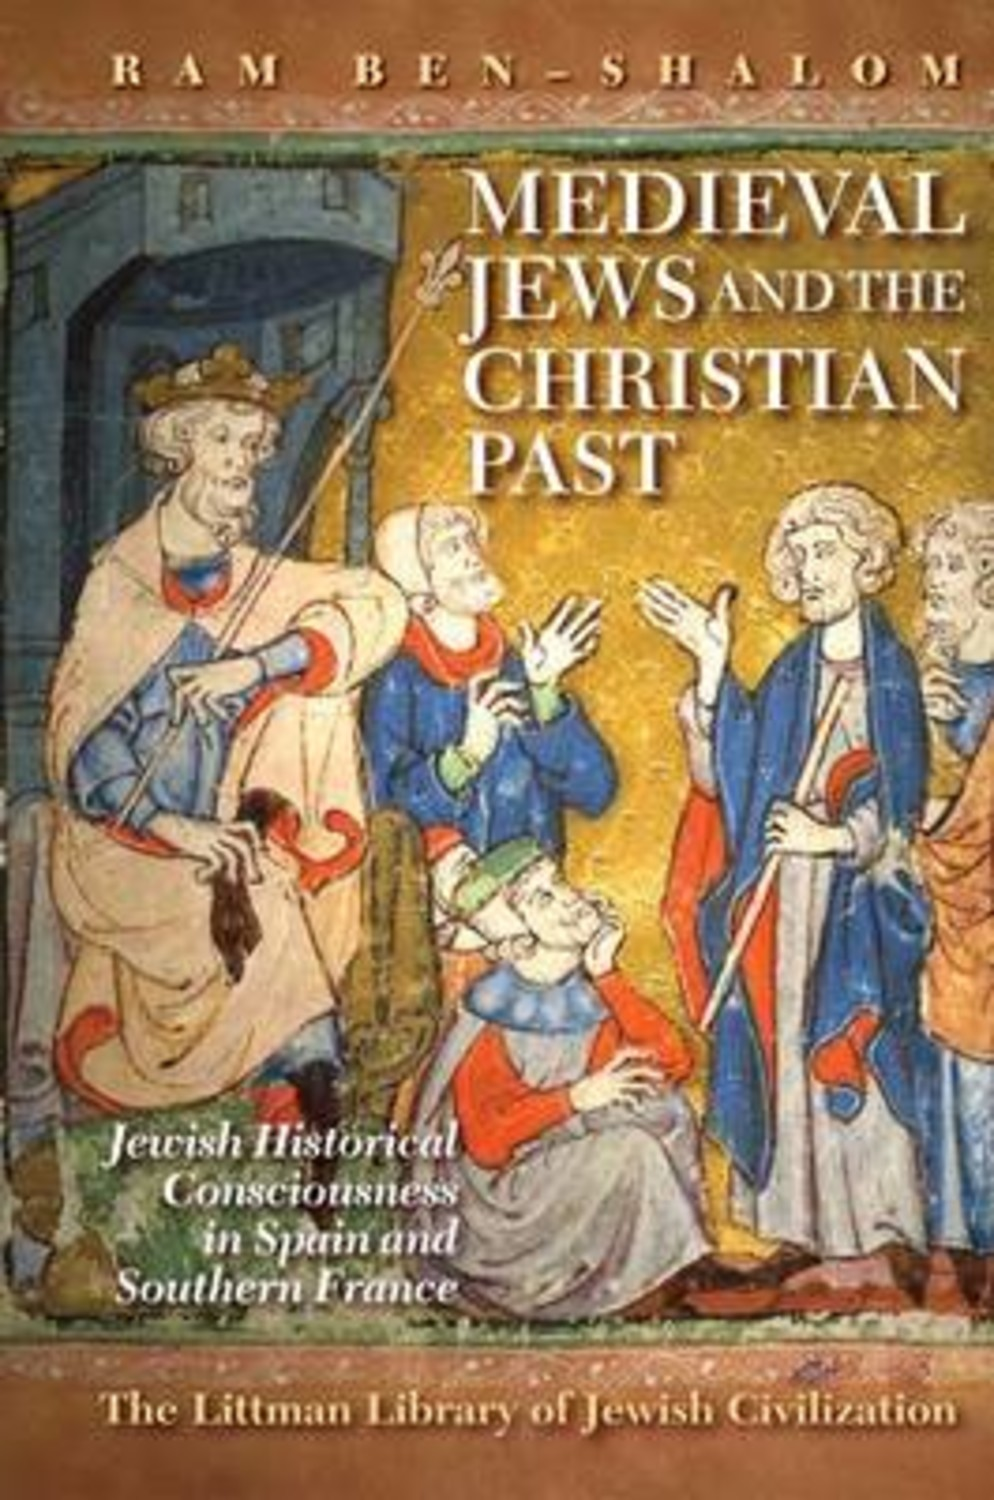 Medieval Jews and the Christian Past